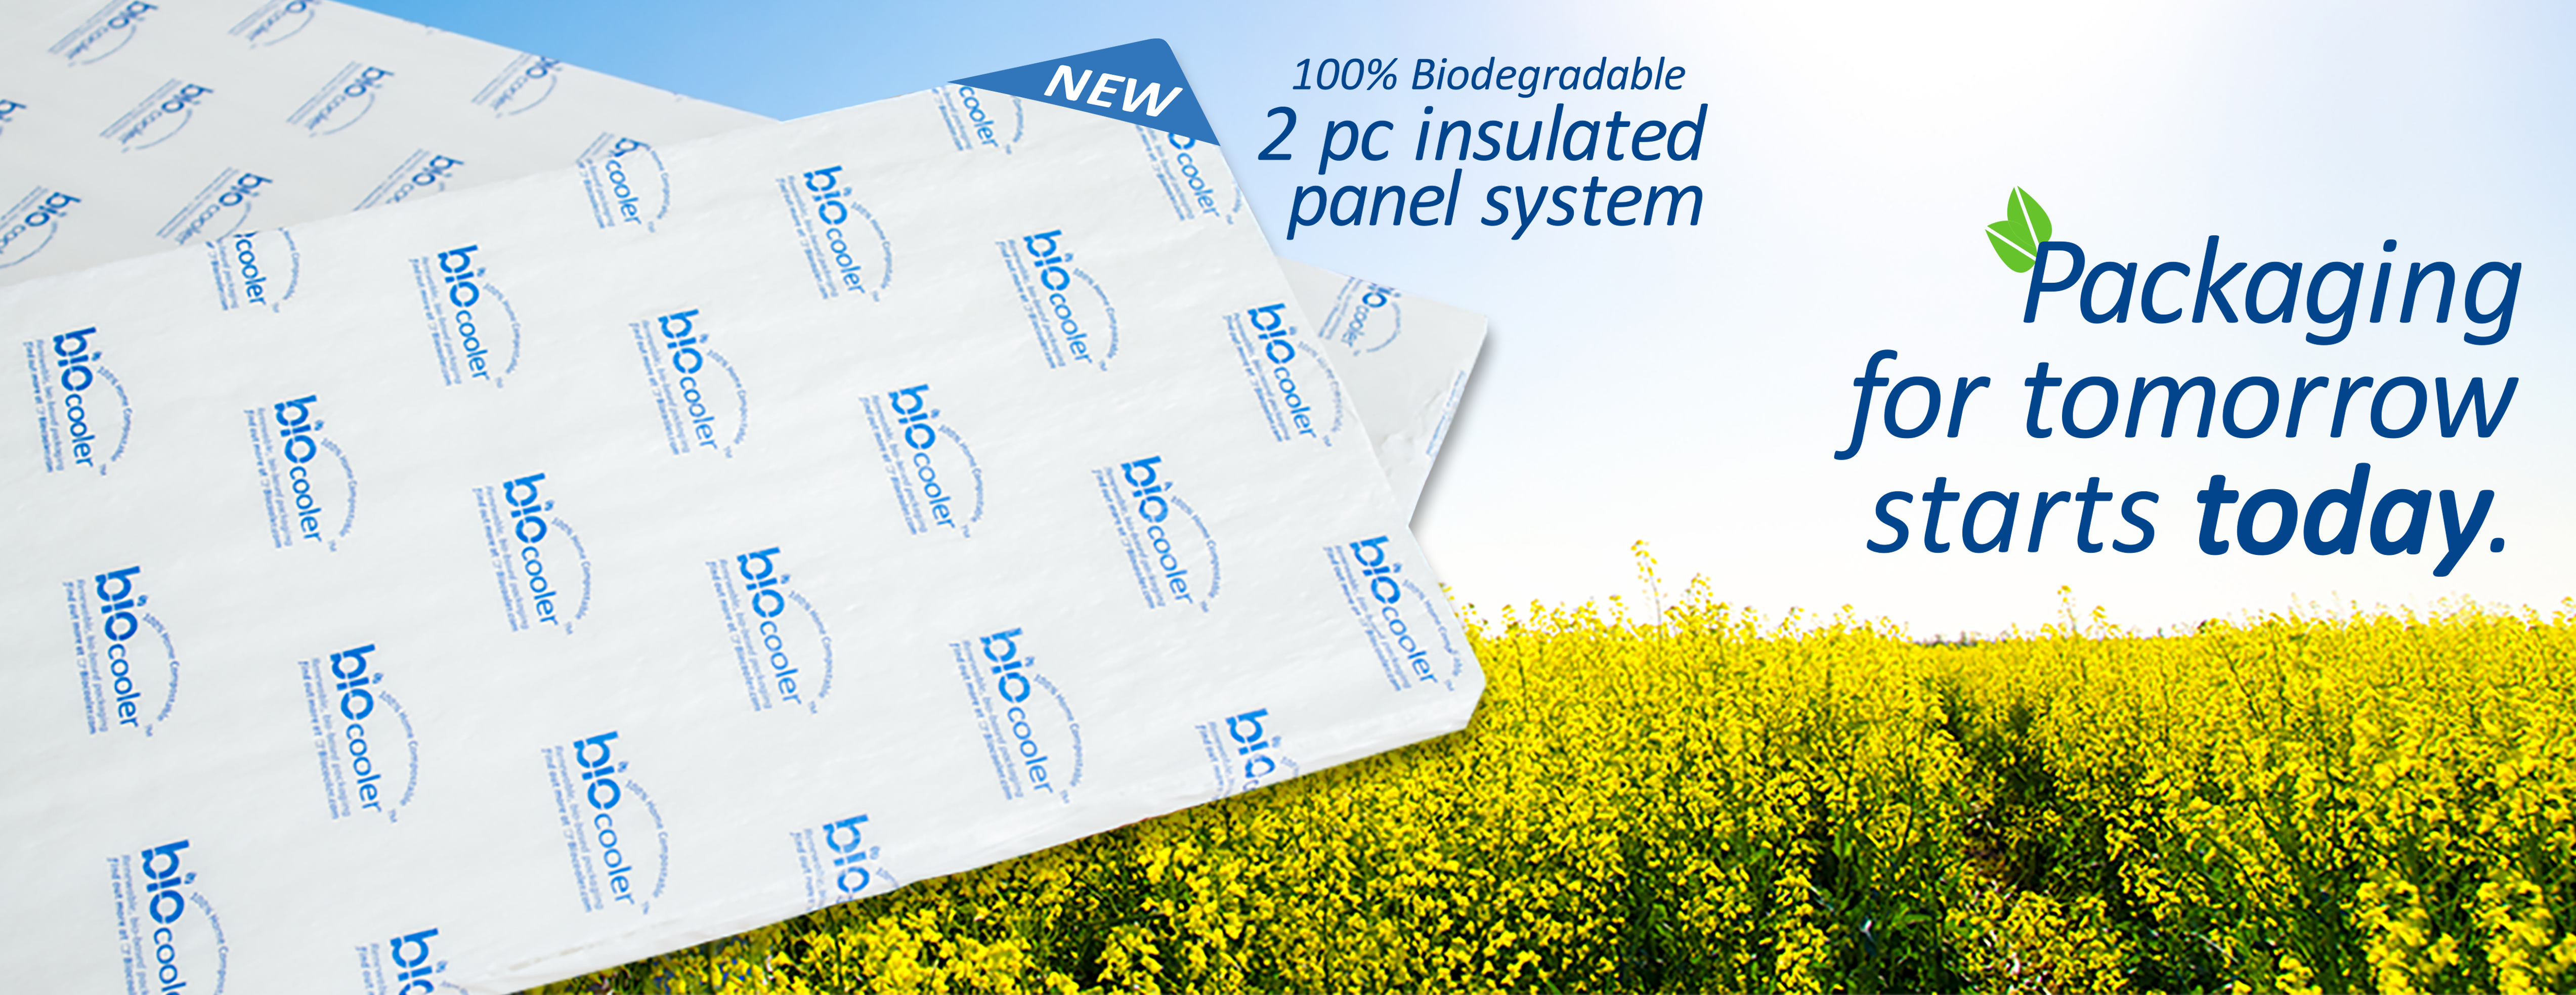 2 Piece Insulated Panel System